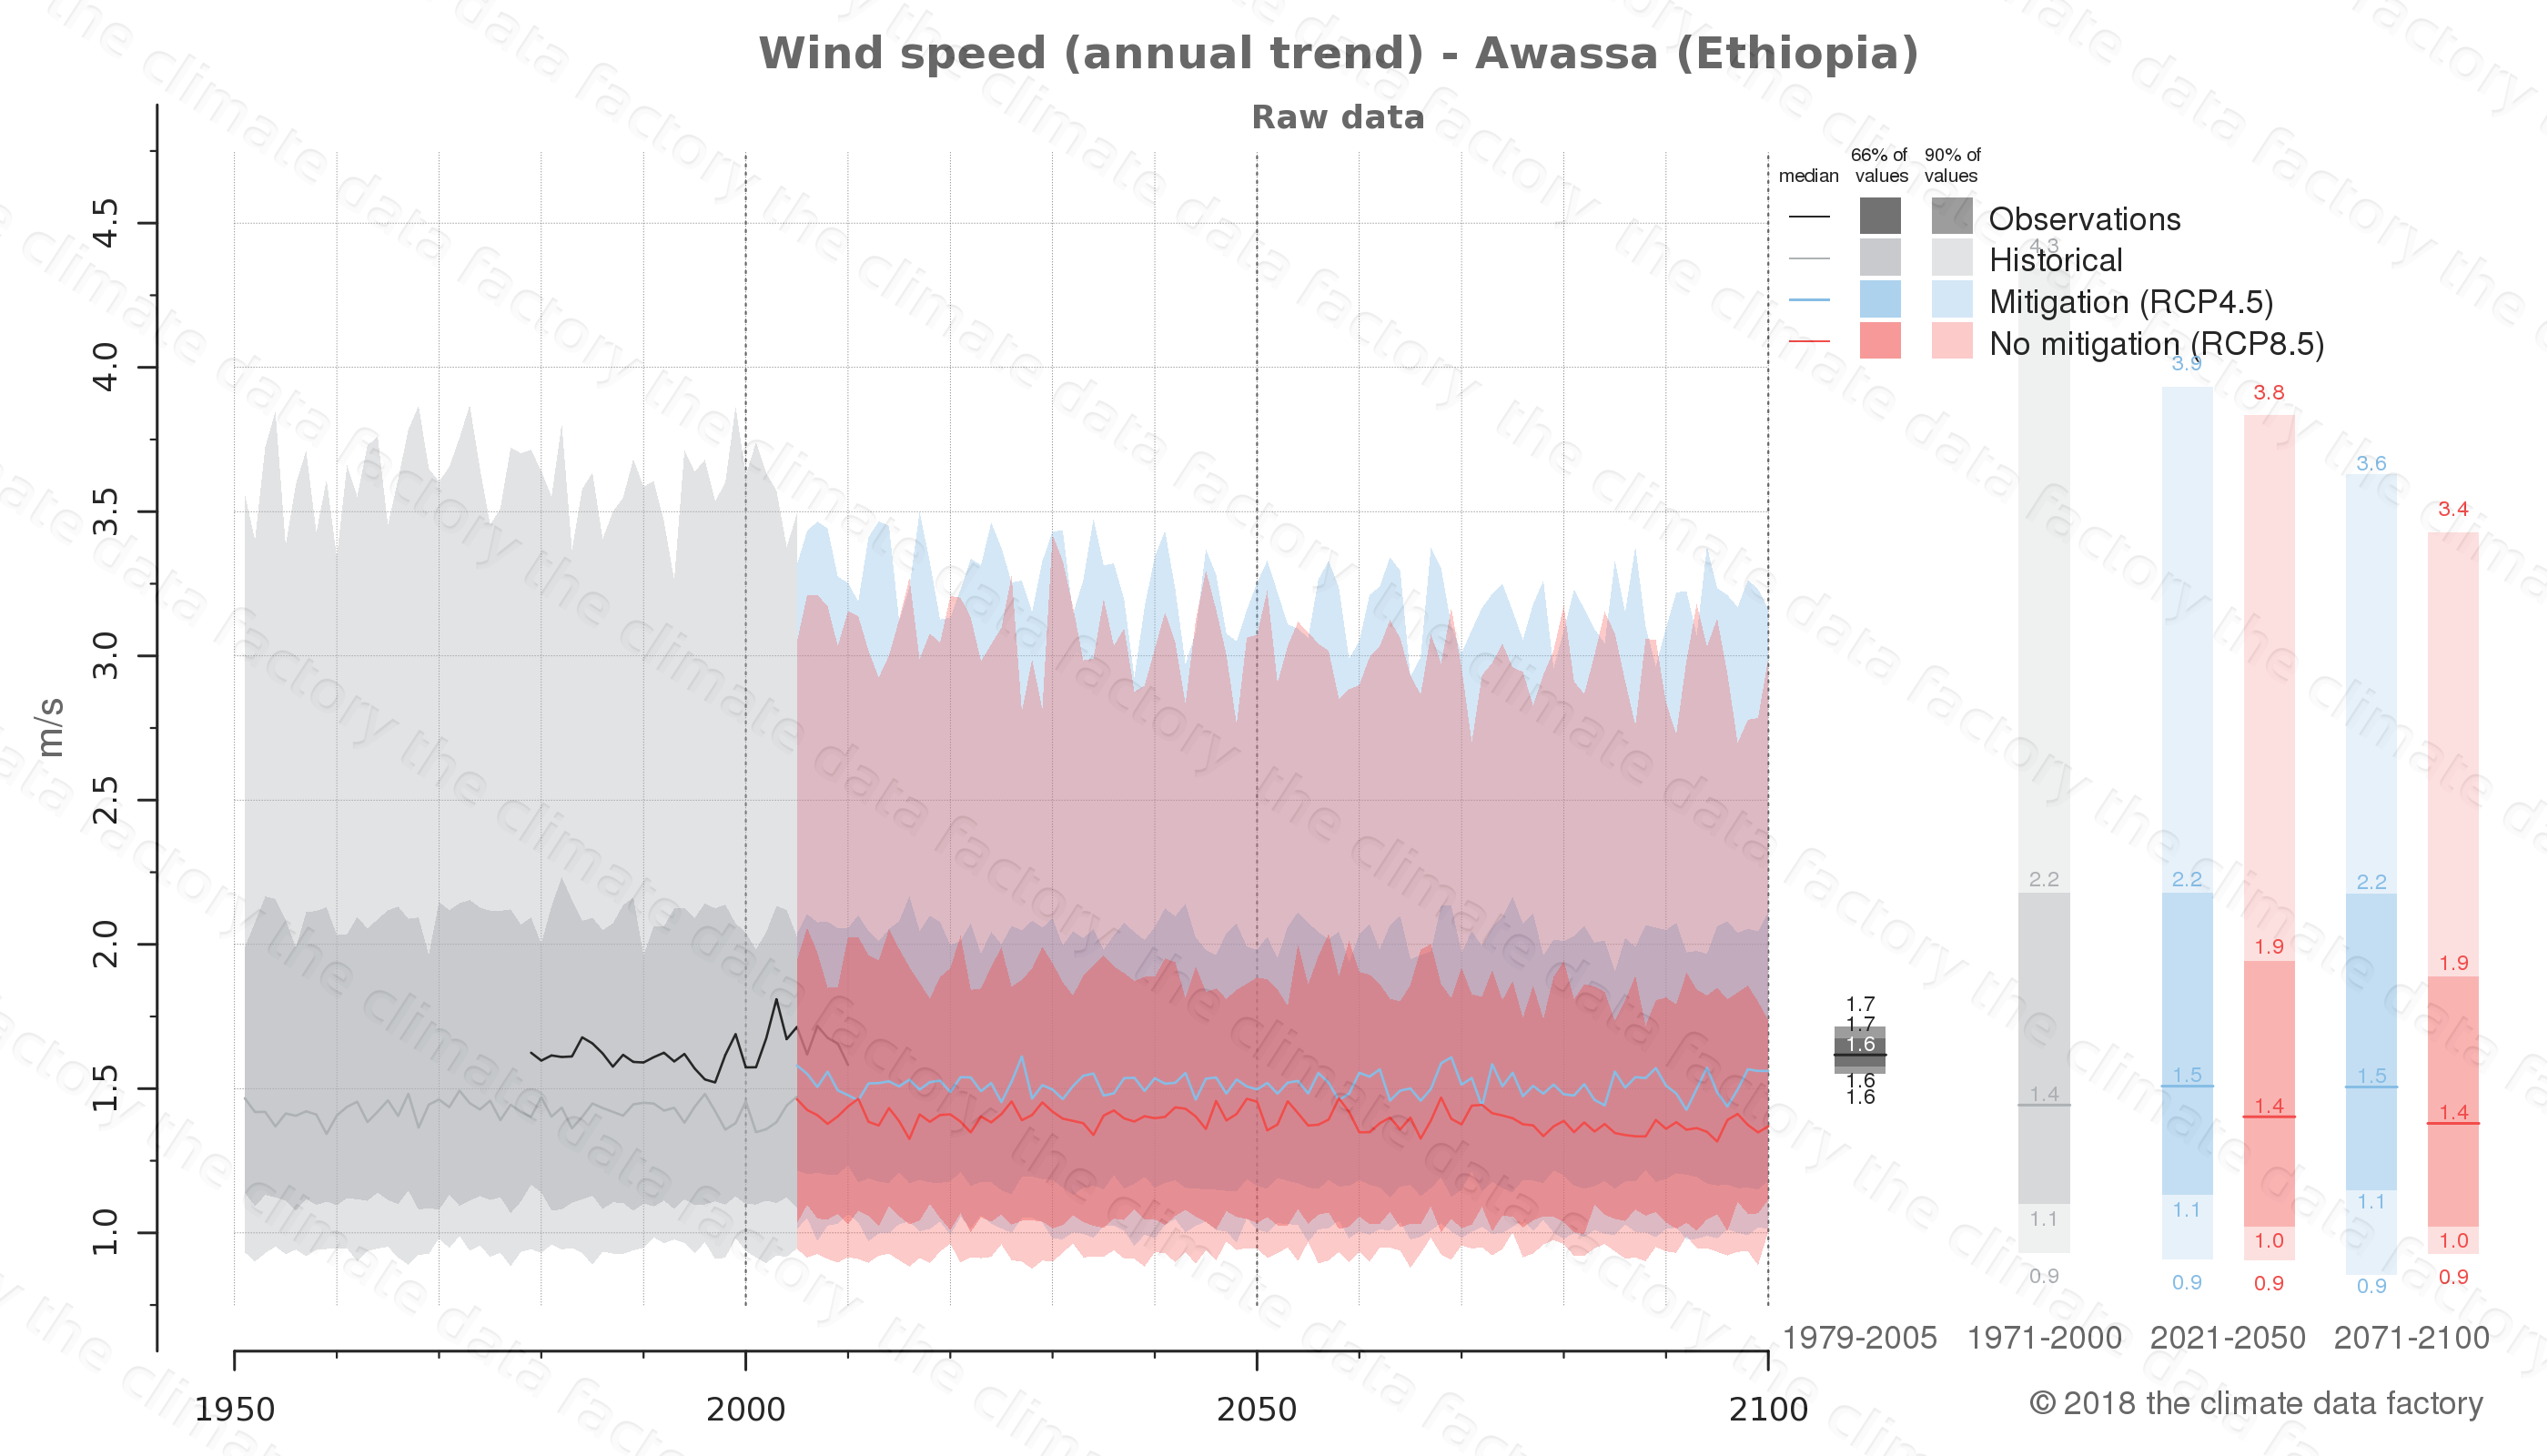 climate change data policy adaptation climate graph city data wind-speed awassa ethiopia